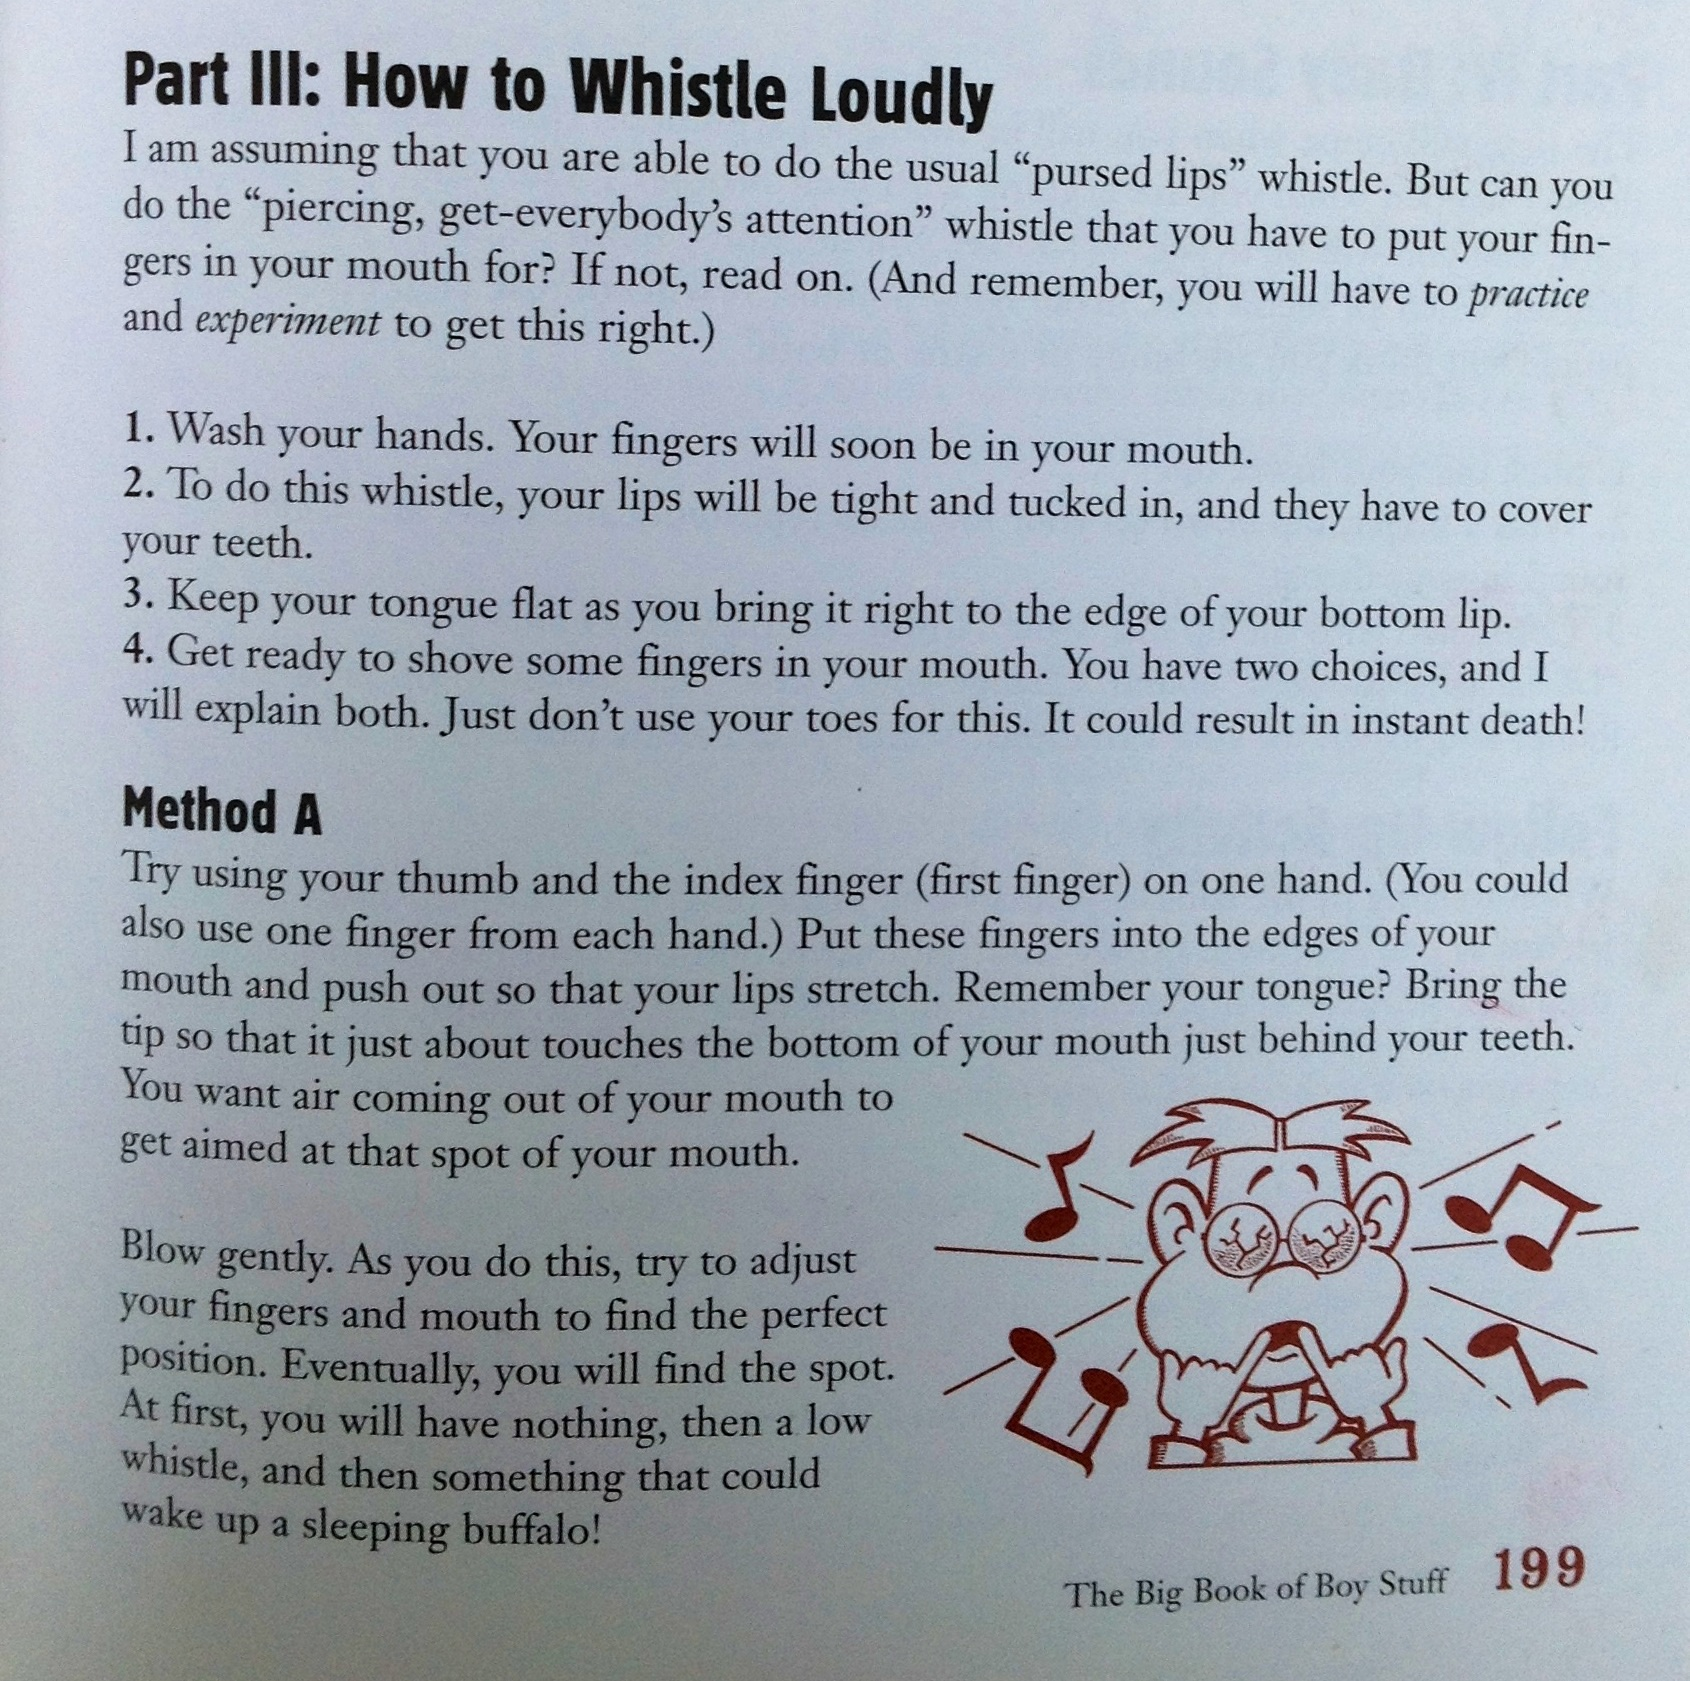 How to whistle loudly